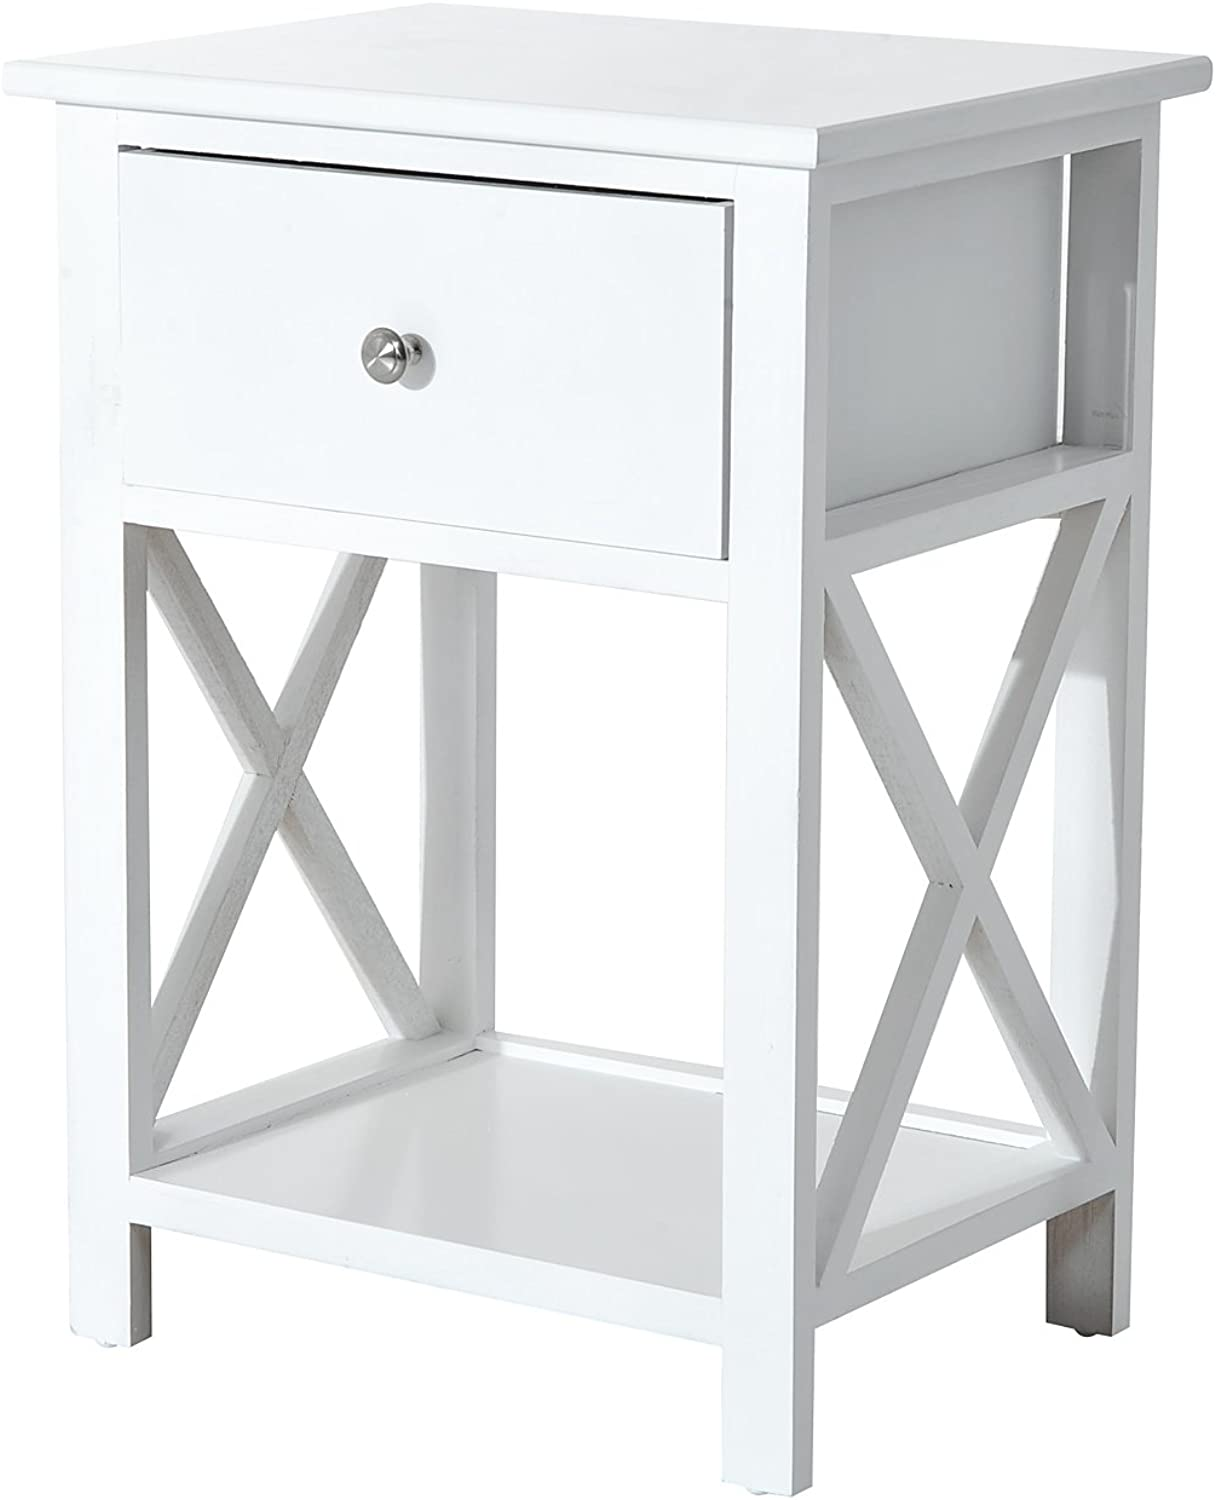 HOMCOM Wooden End Table for Living Room with Storage Drawer and Shelf, Bedroom Nightstand Coffee Table for Living Room Balcony Home and Office, White